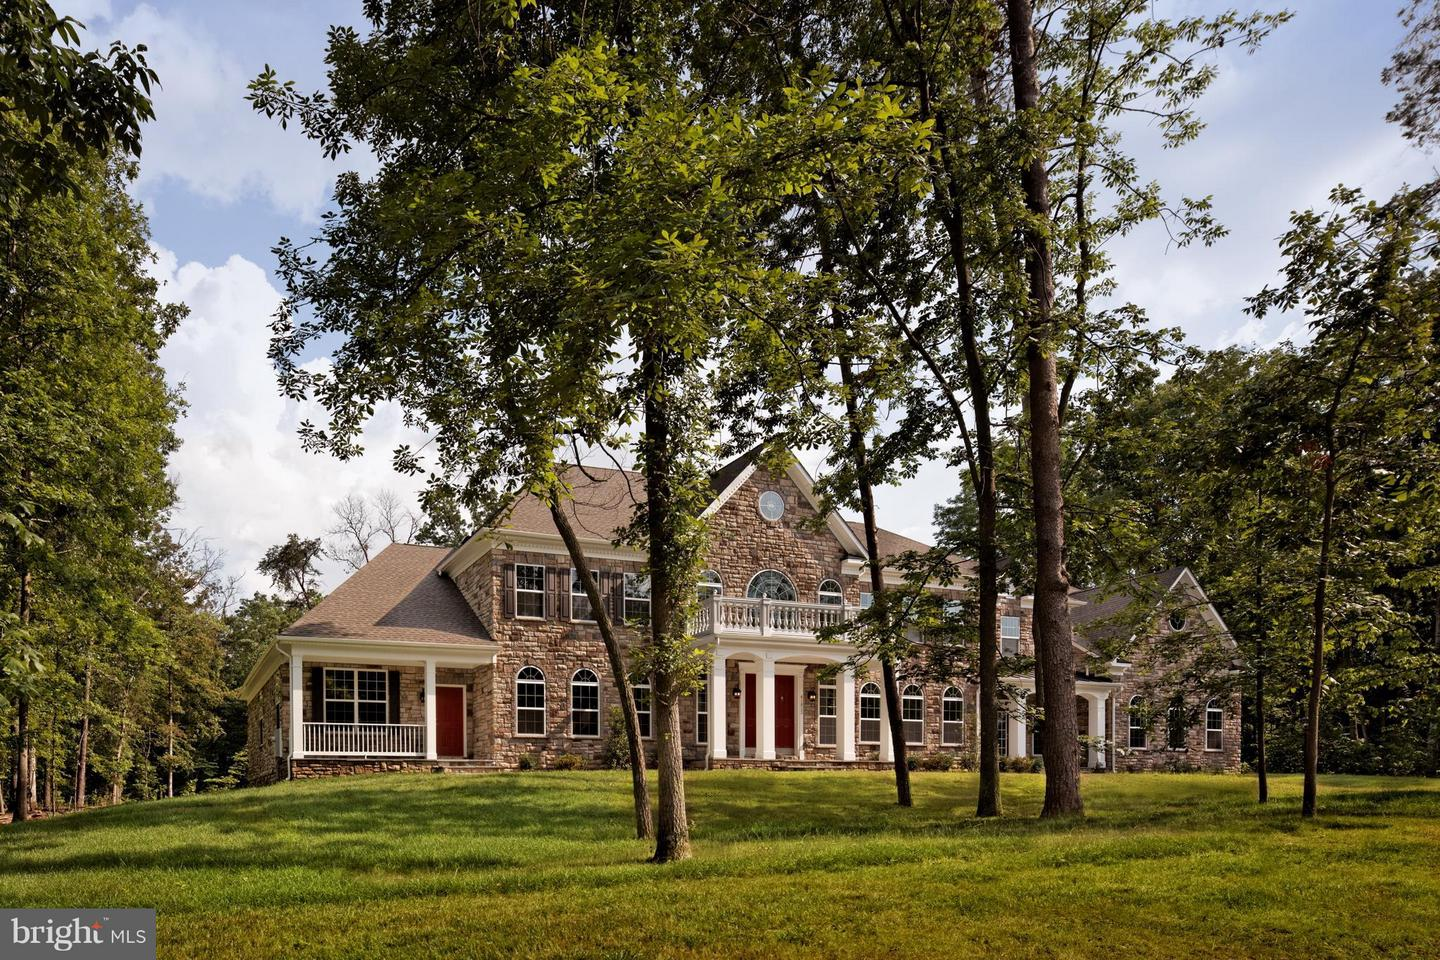 Single Family Home for Sale at Bull Run Woods Trail Bull Run Woods Trail Centreville, Virginia 20120 United States